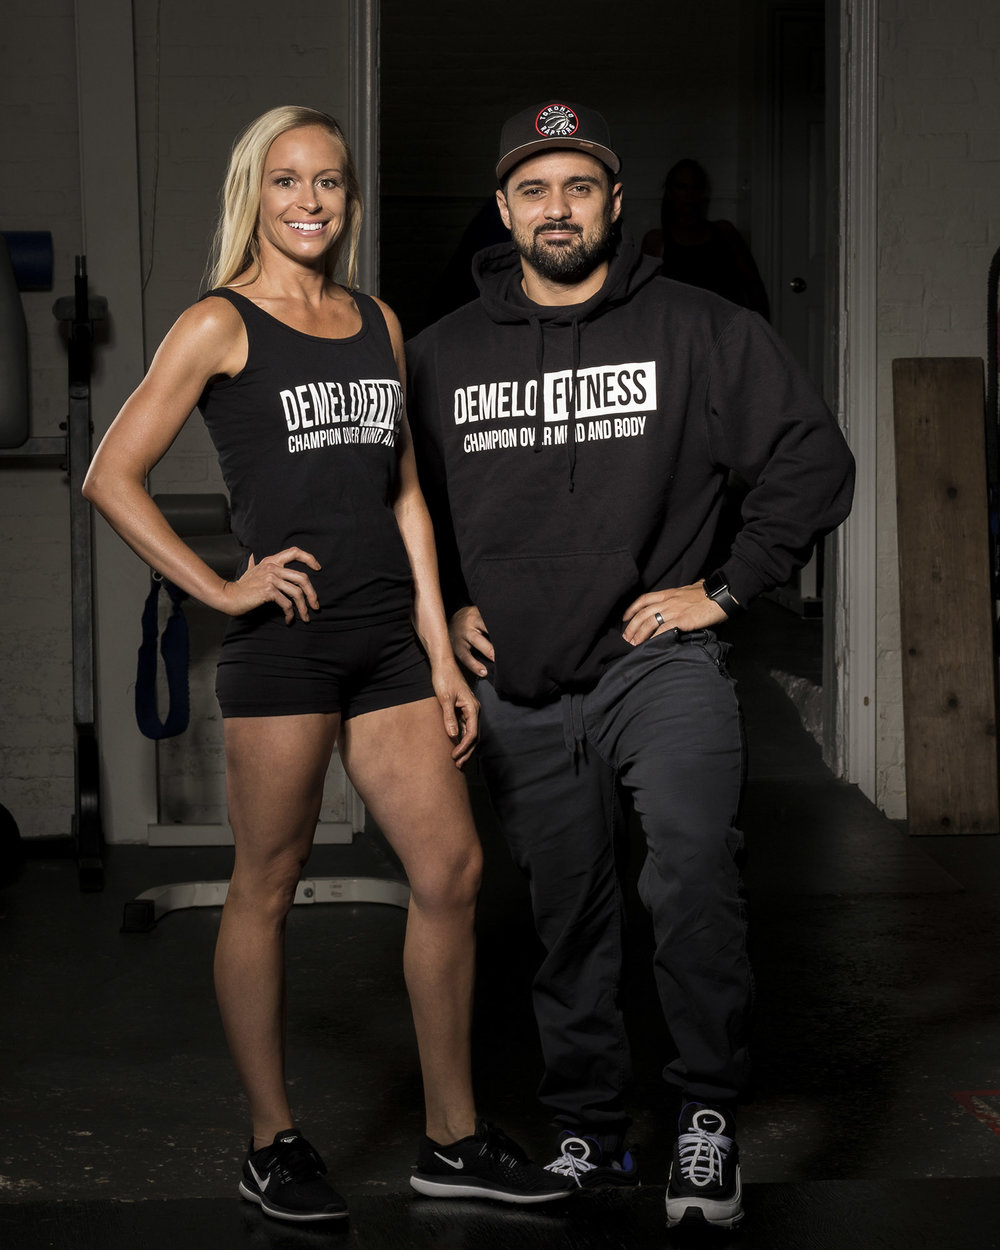 Josh and Melissa, DEMELO FITNESS